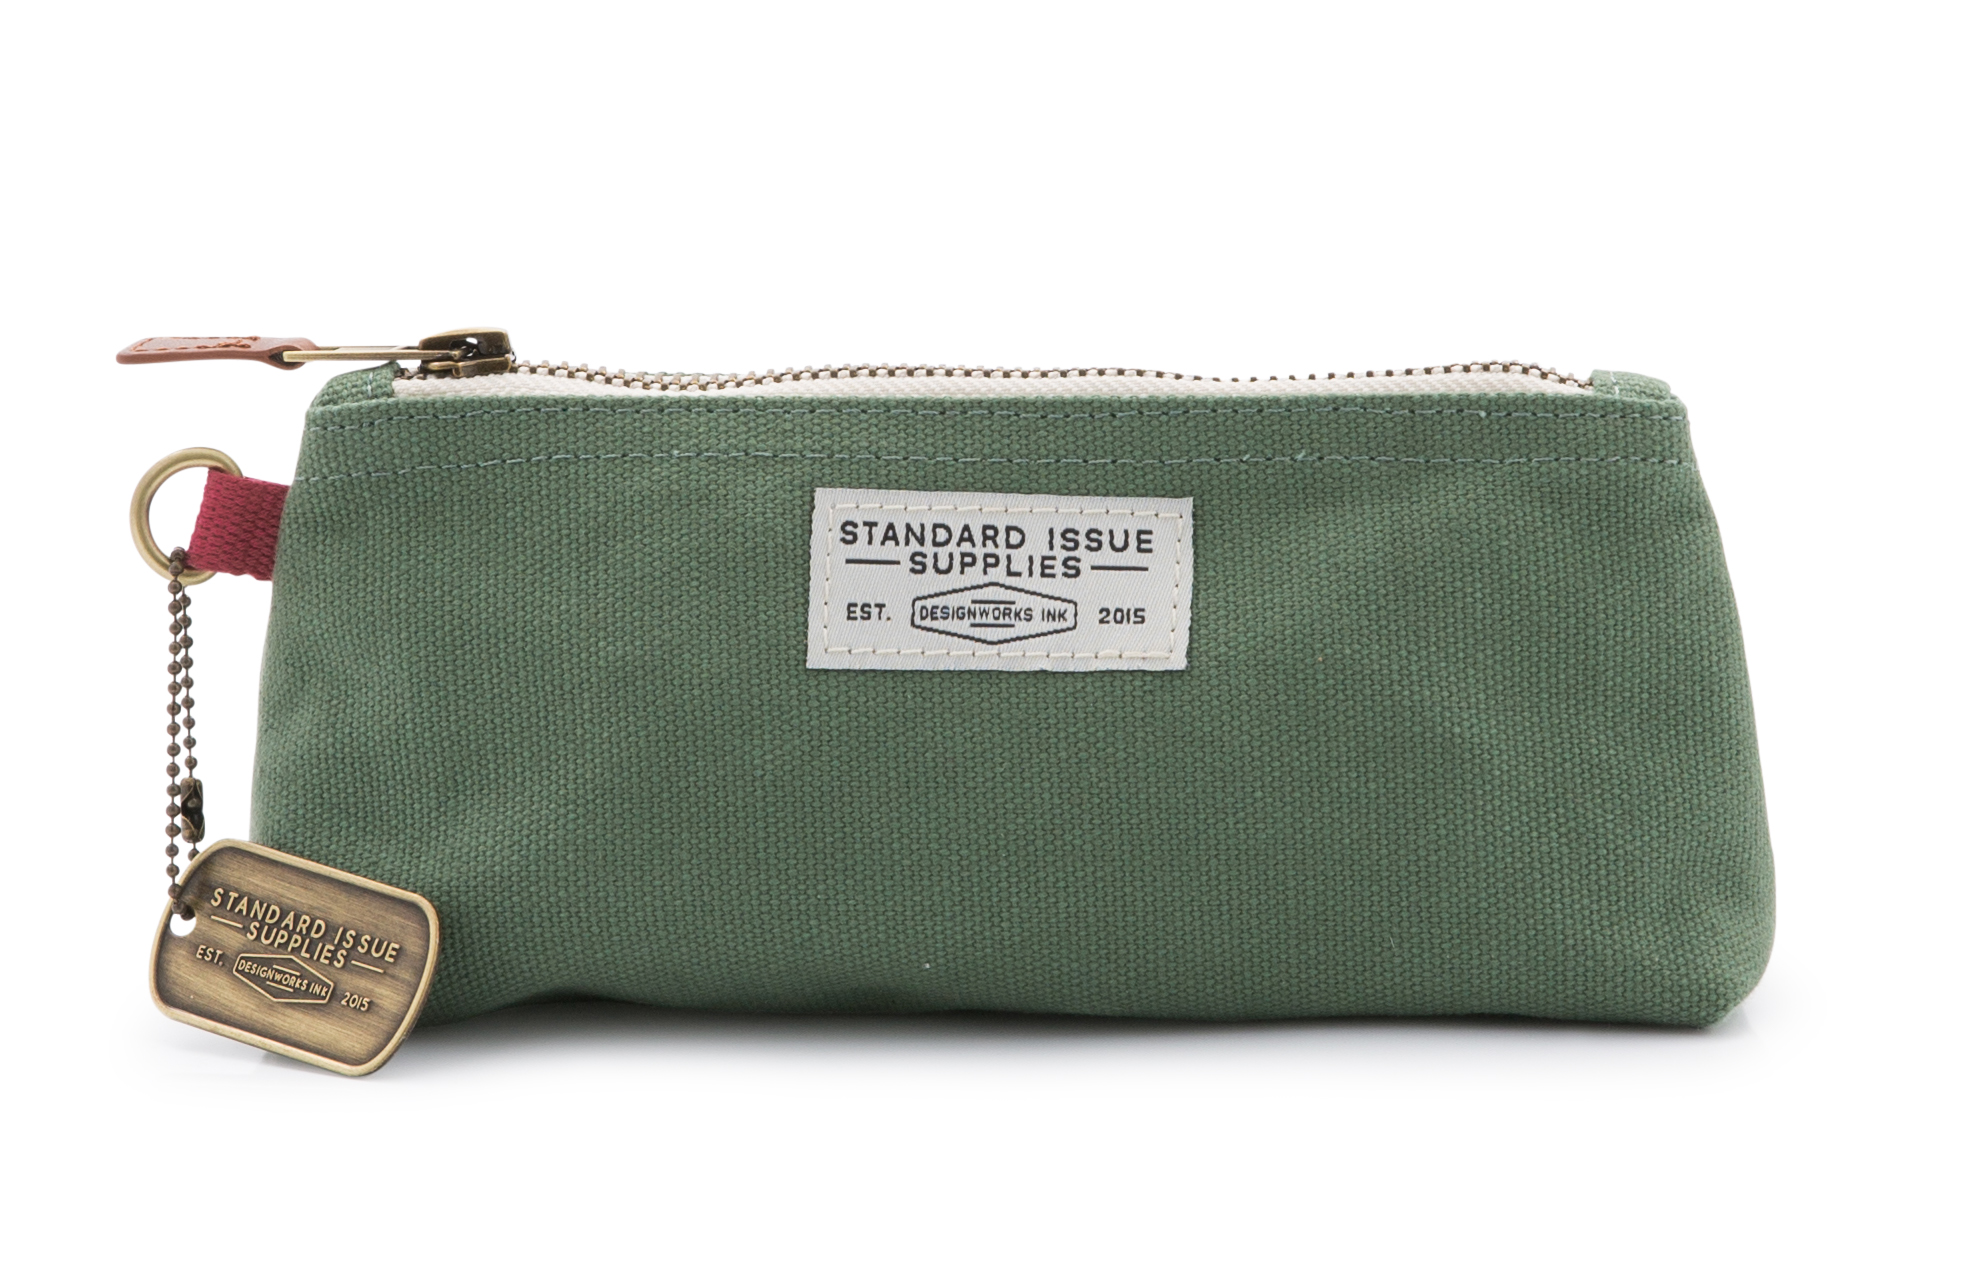 STANDARD ISSUE PENCIL POUCH FRONT.jpg